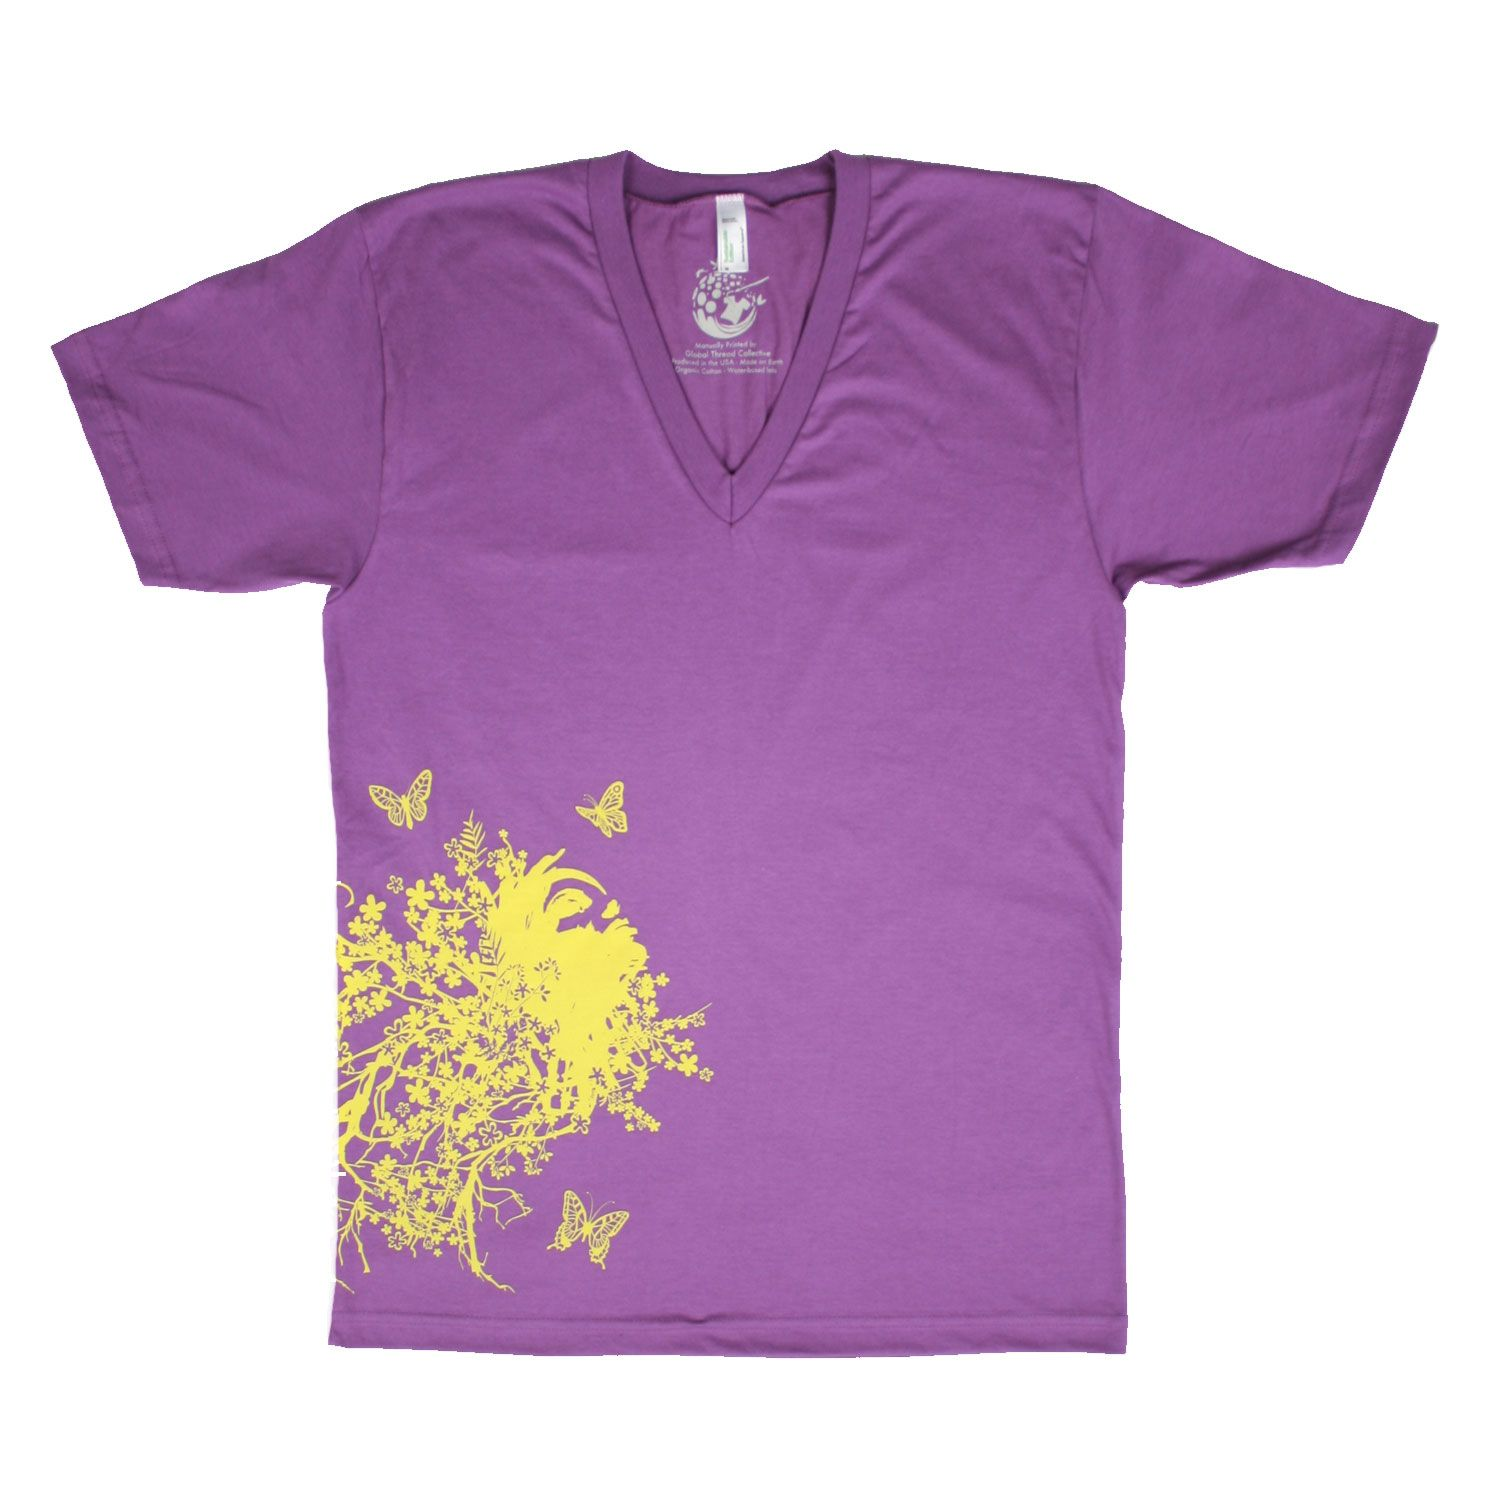 """Shown on American Apparel organic cotton, ultraviolet, """"LADYHEAD LOST"""" design by Heavyhand, Surbiton, Surrey, United Kingdom. Prices starting at $22. Eco-friendly, water-based ink in multiple colors. Offered on t-shirts, v-neck, infants and kids sizes, adult to 3XL, and more. Produced in the USA and made on Earth. Only at the Global Thread Collective."""